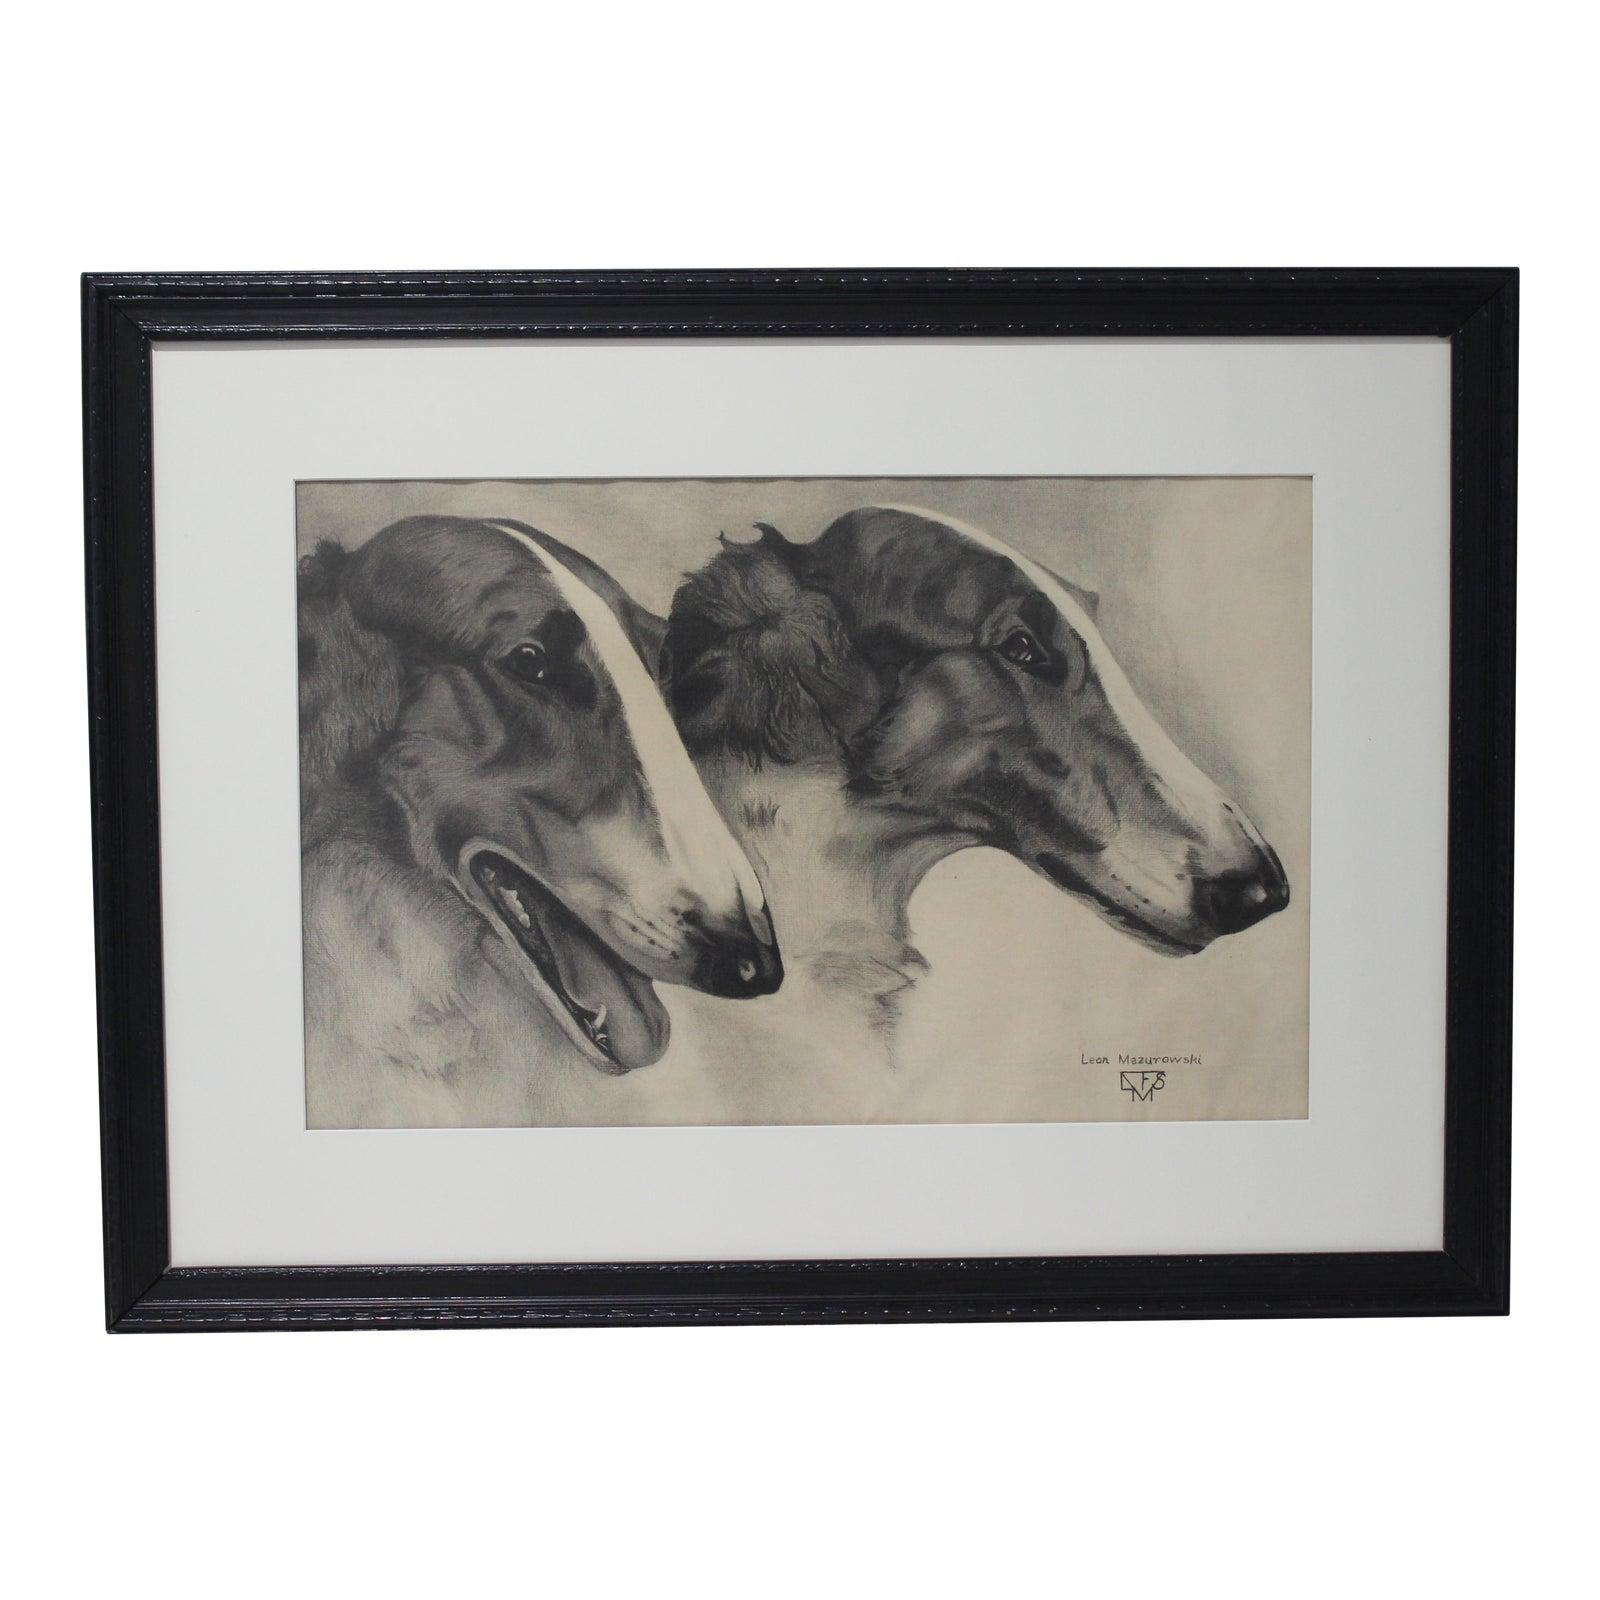 Leon Mazurowski Borzoi Dogs Graphite and Charcoal Drawing on Paper